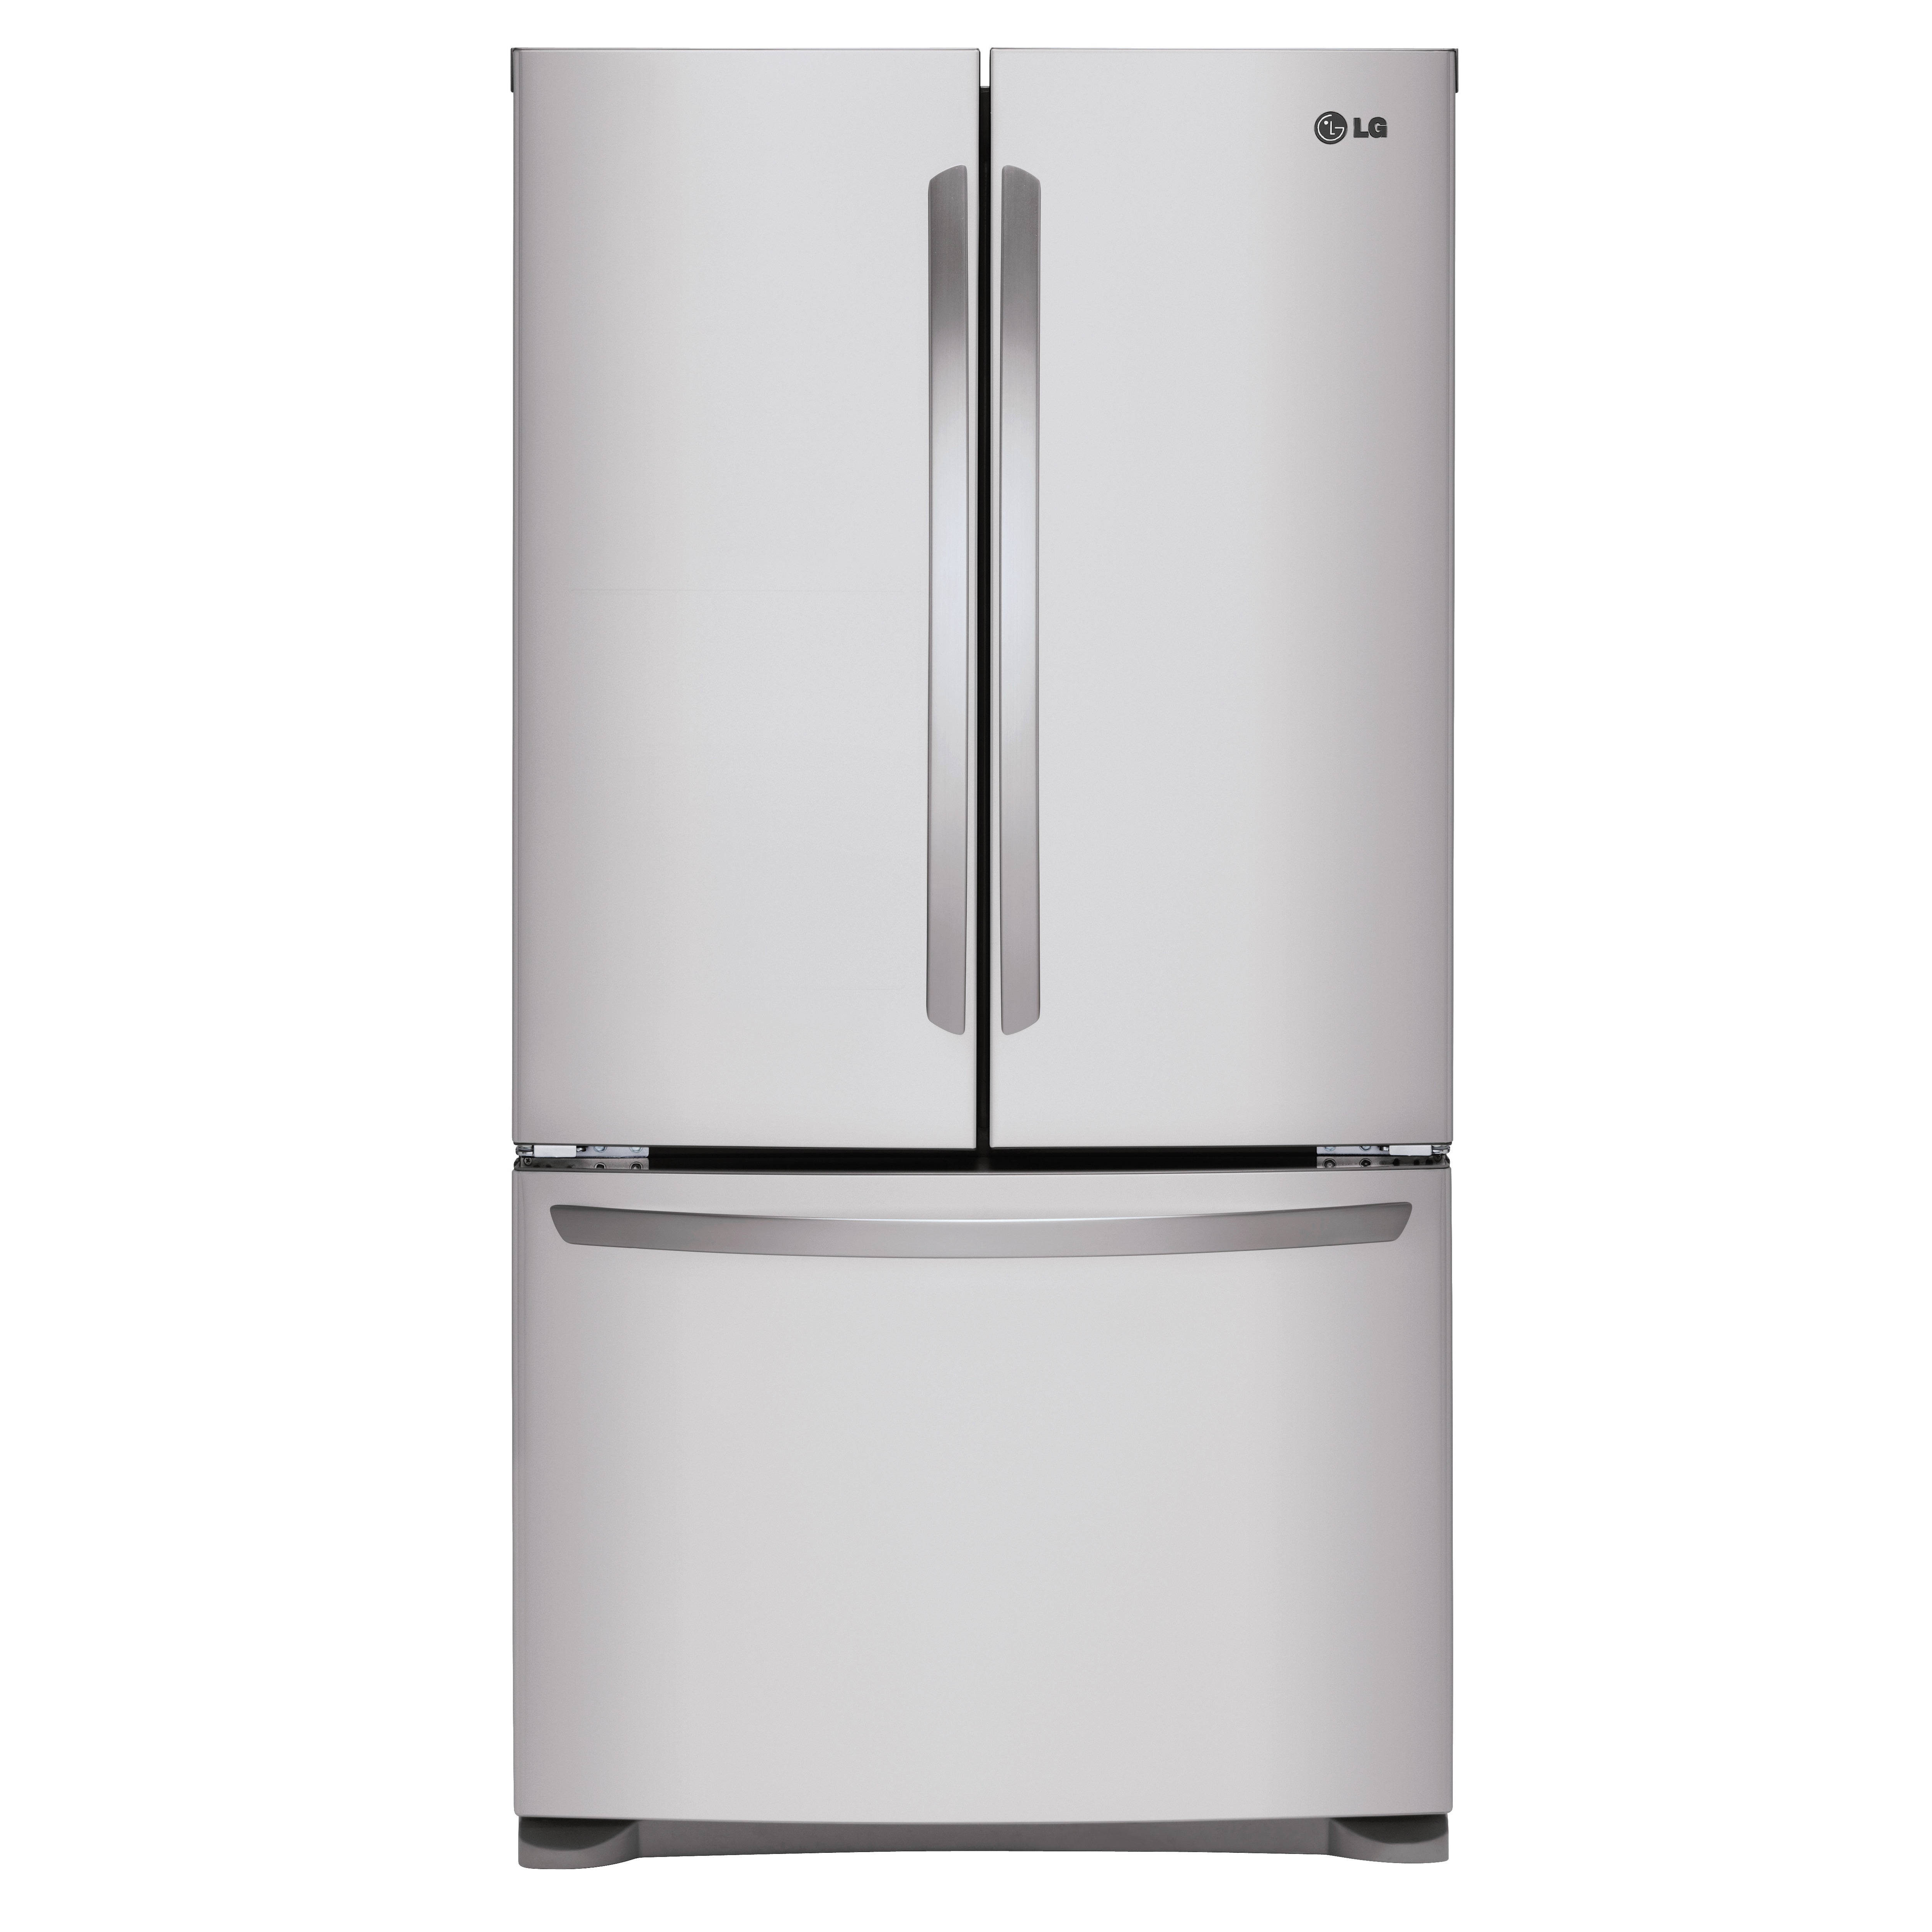 LG 25.4-cu ft French Door Refrigerator Single Ice Maker (Stainless Steel)